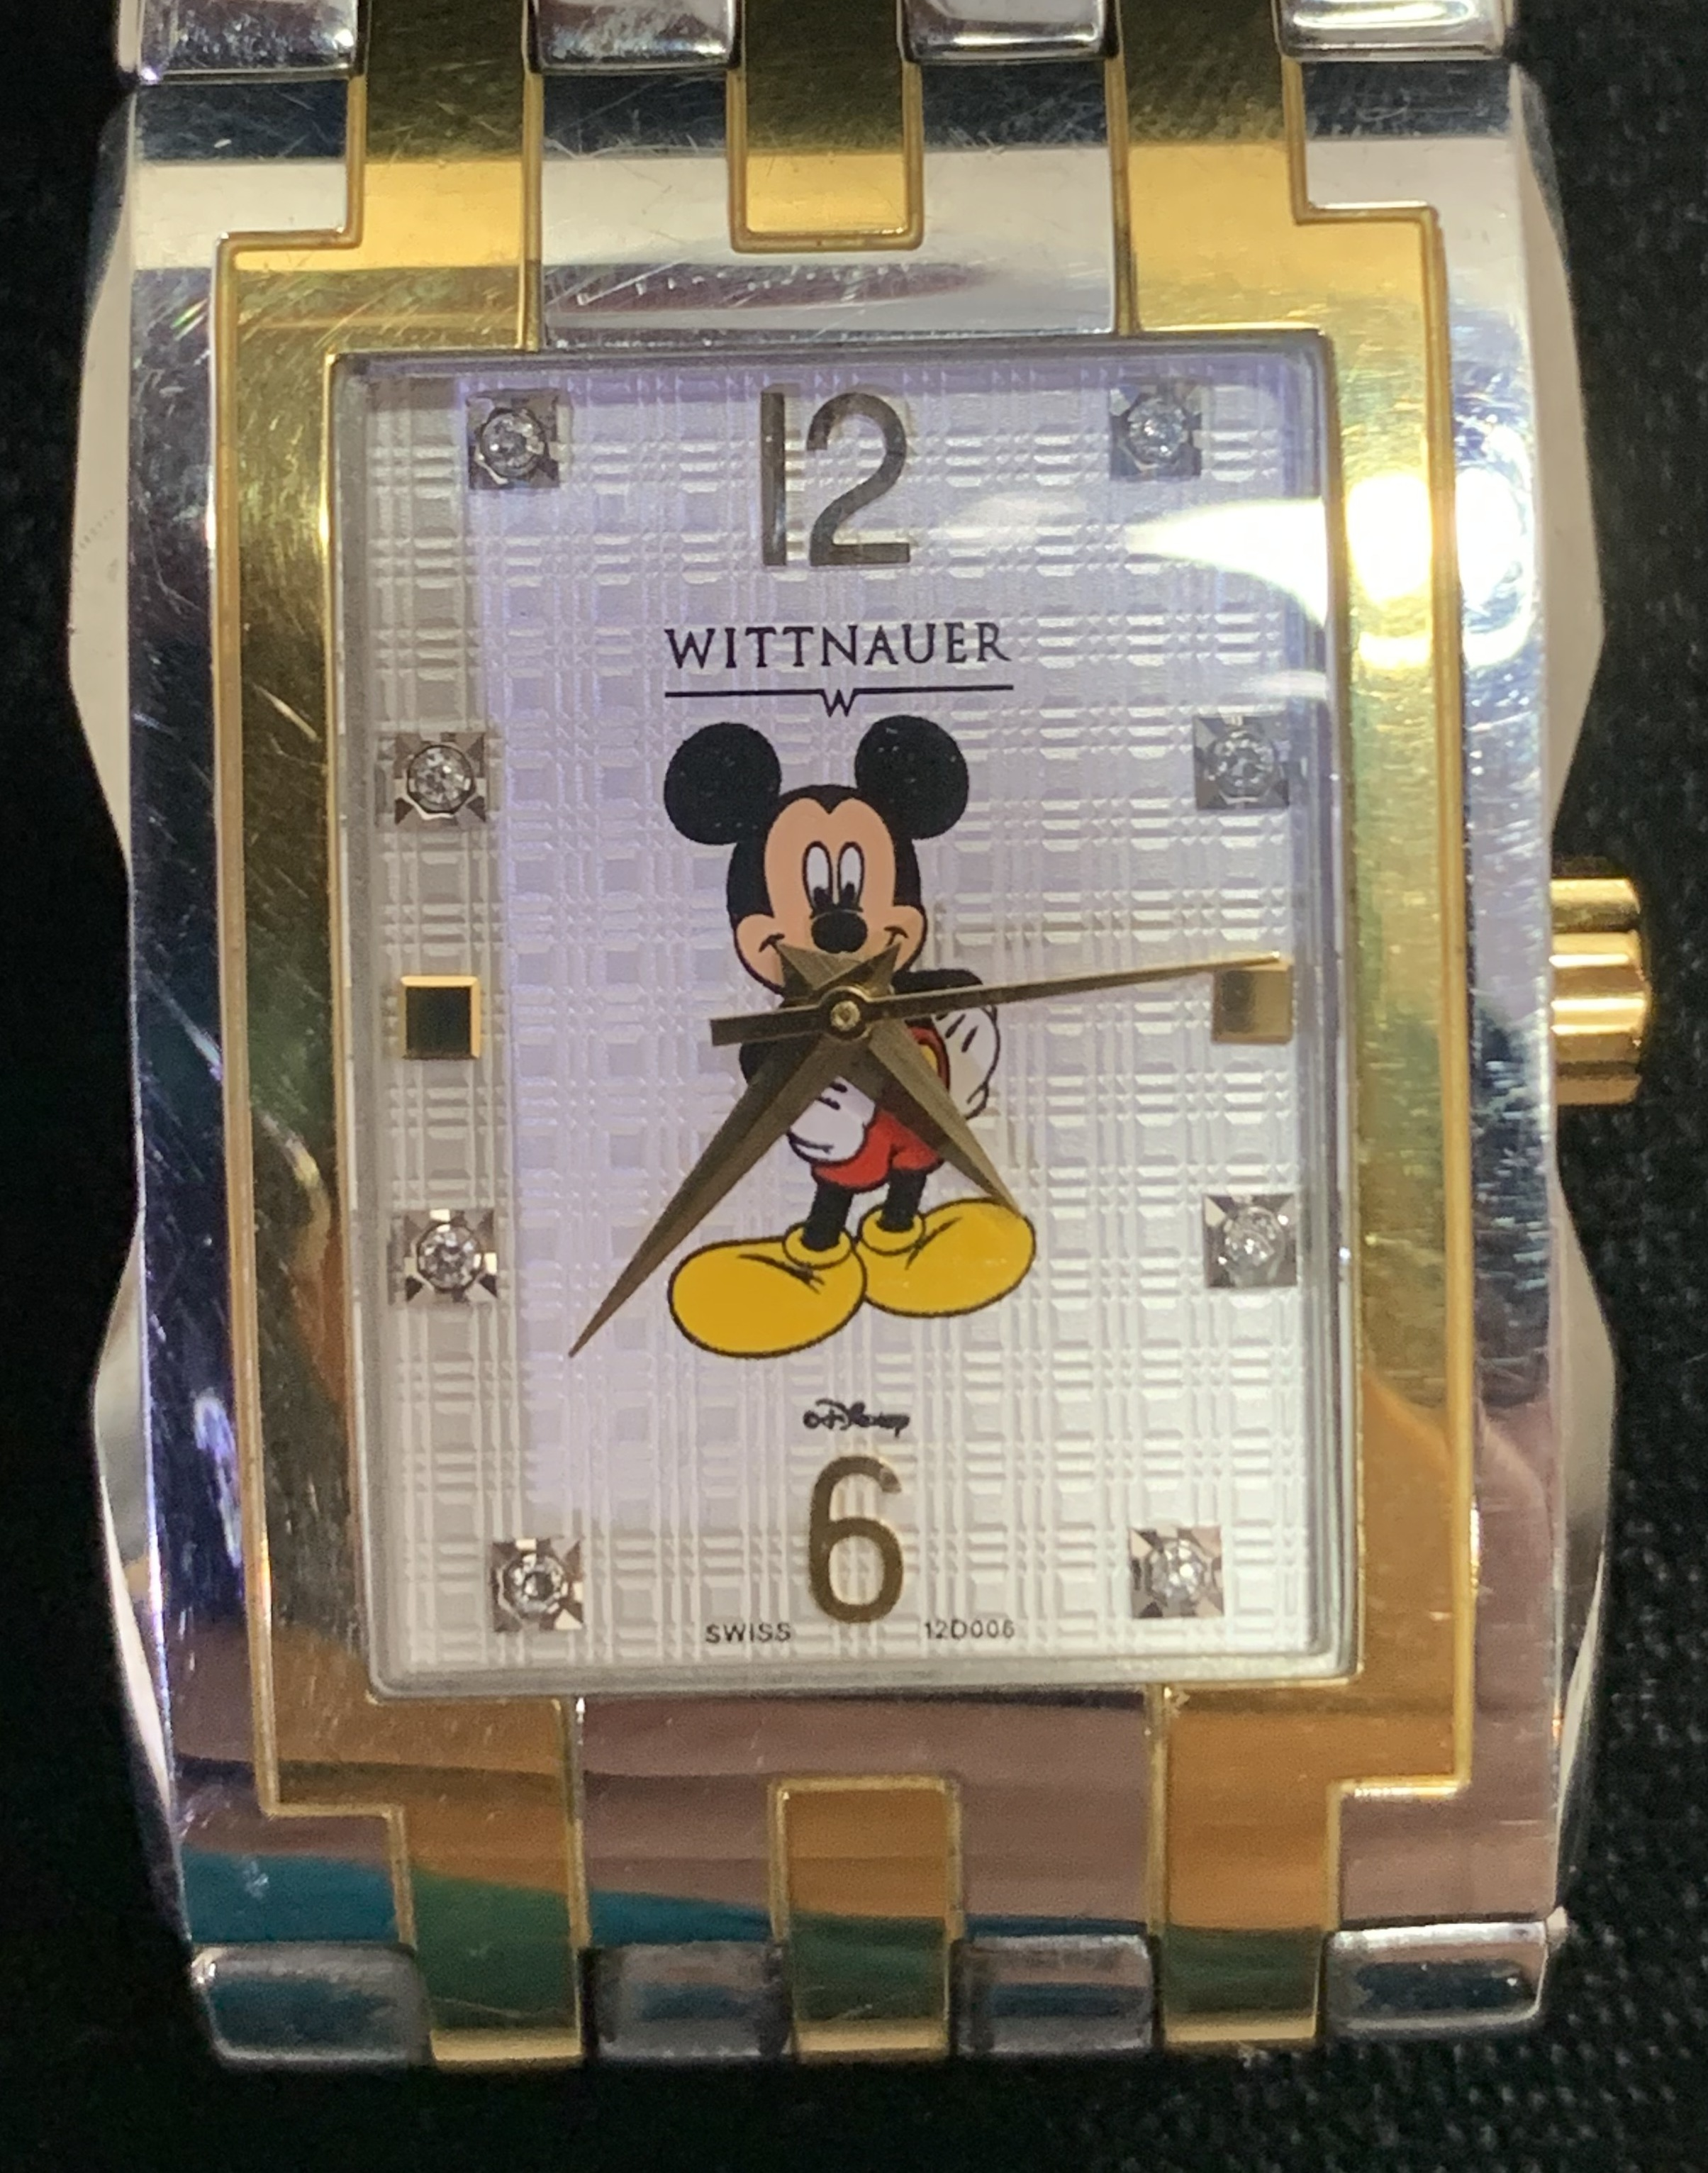 Wittnauer Men's Two Tone Disney Watch - Mickey Mouse - Stainless Steel